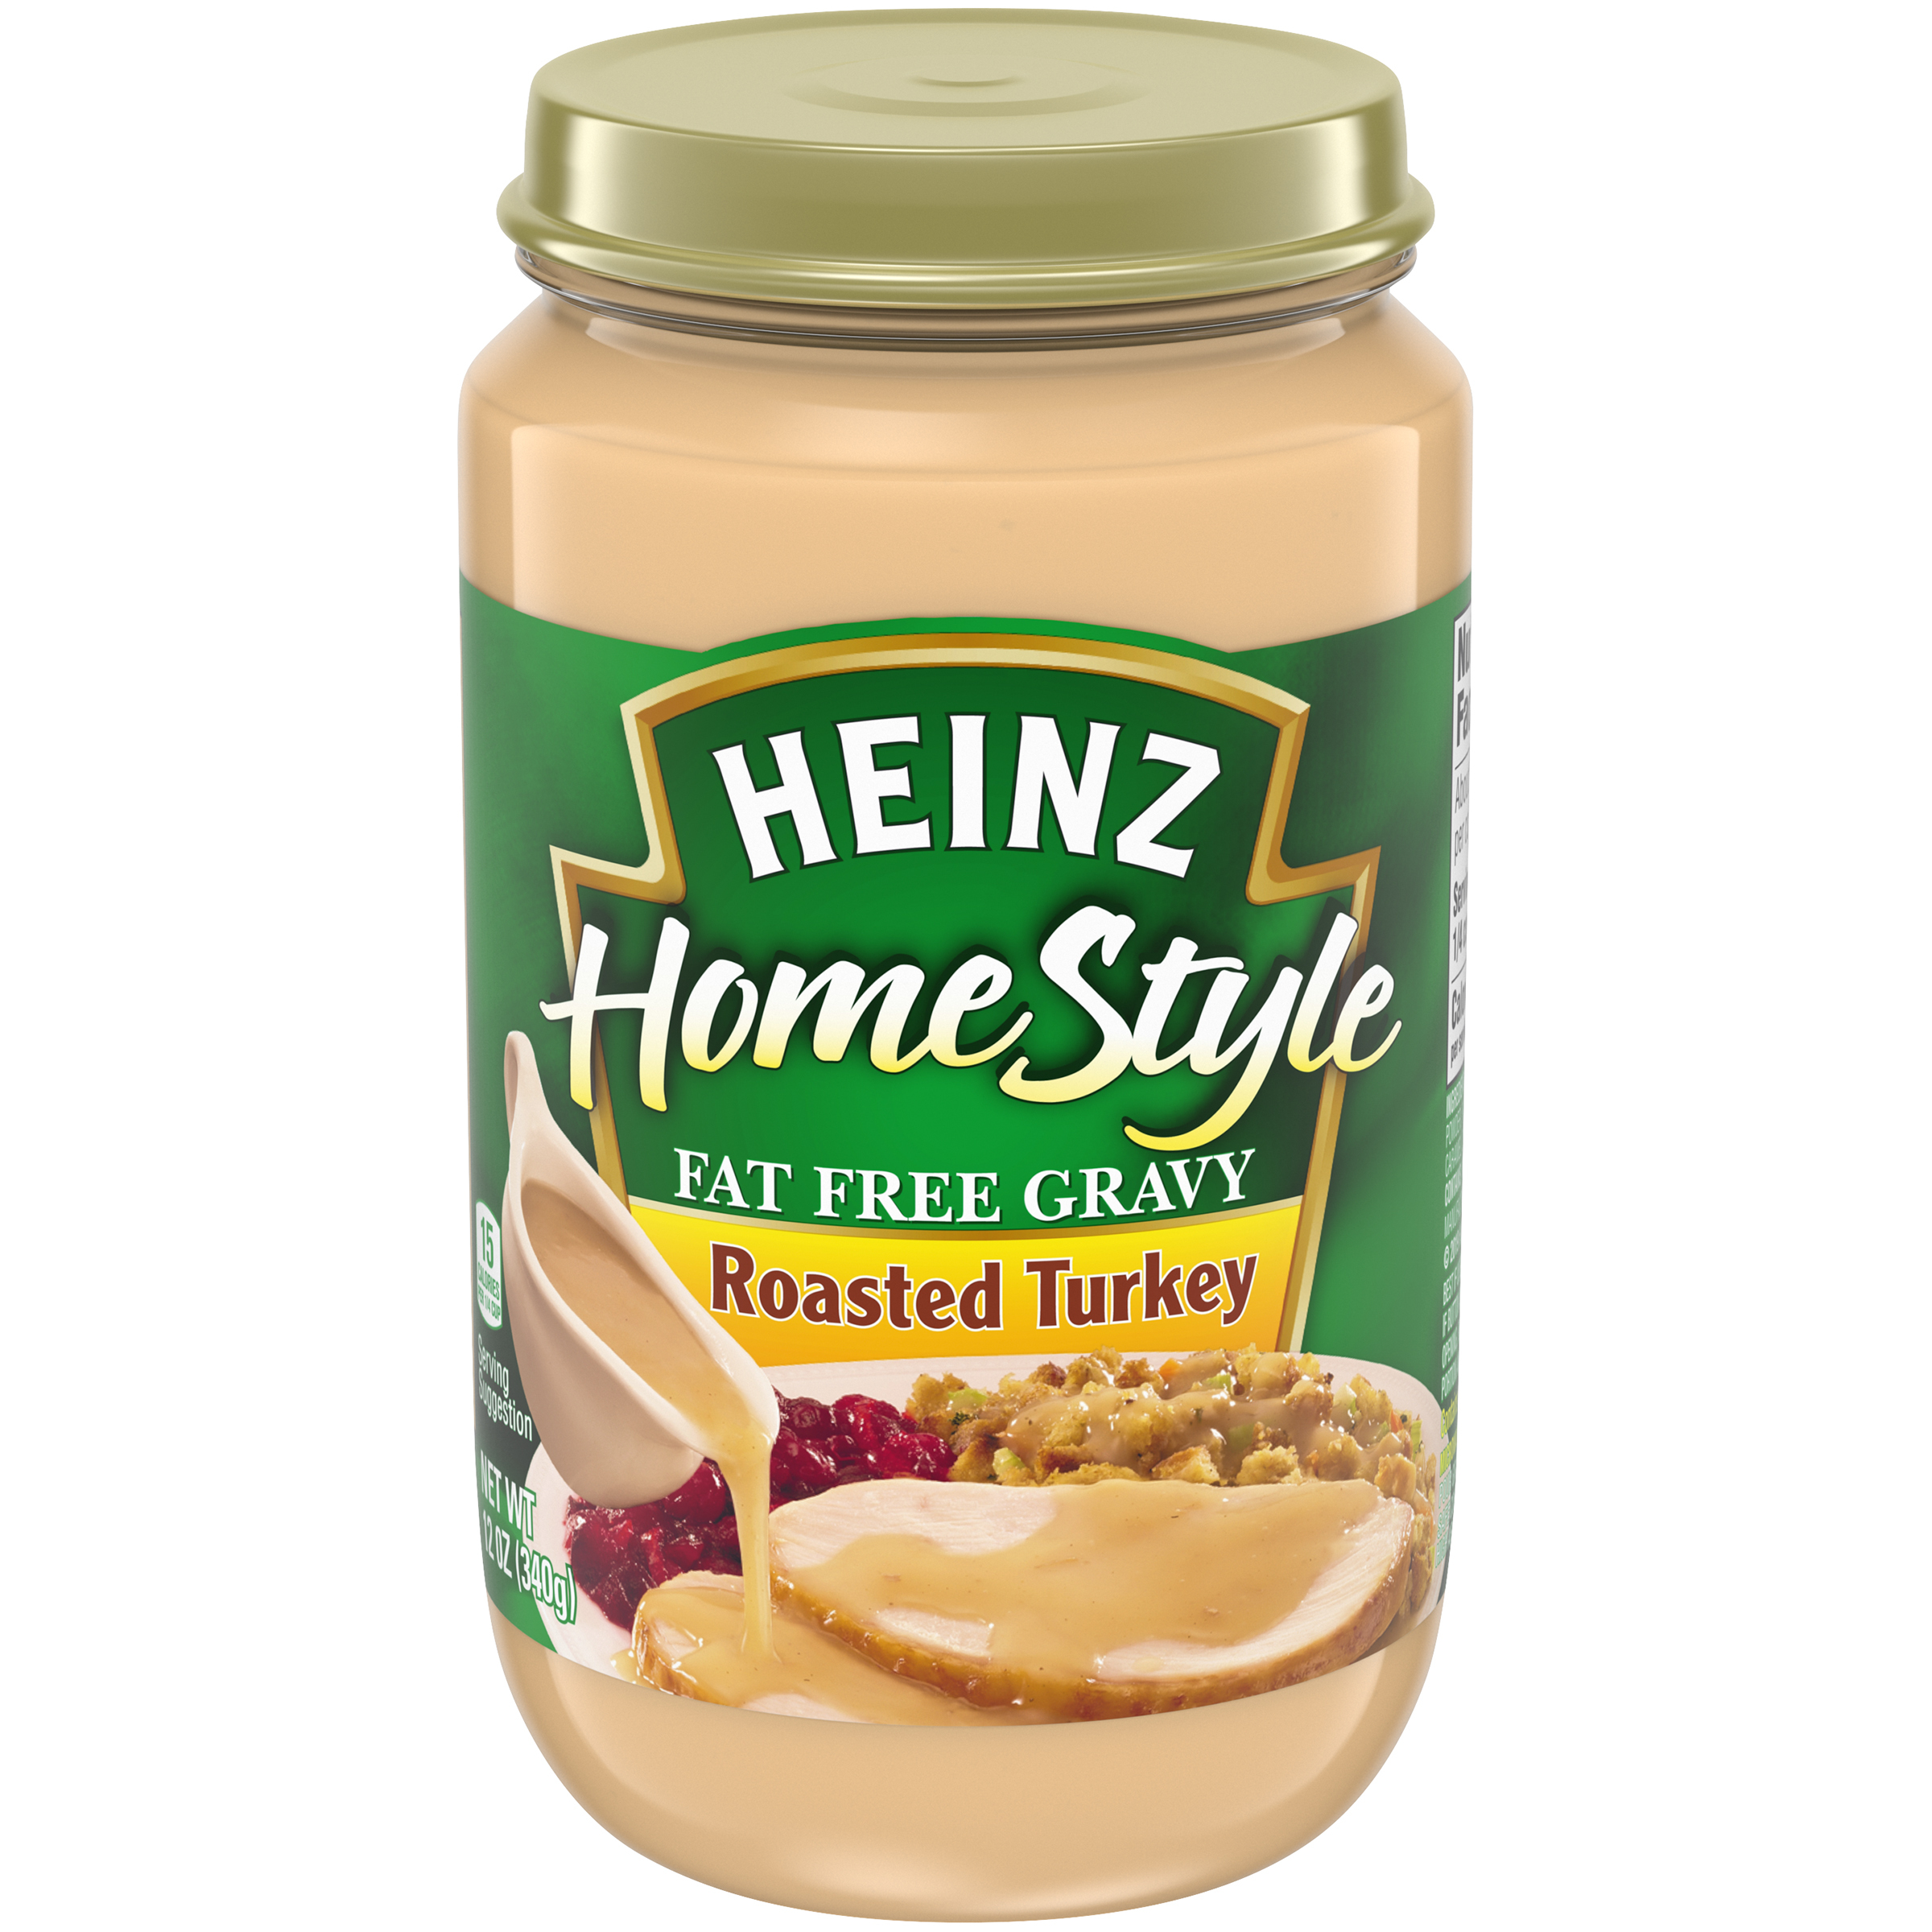 Heinz Home Style Fat Free Roasted Turkey Gravy 12 oz Jar image